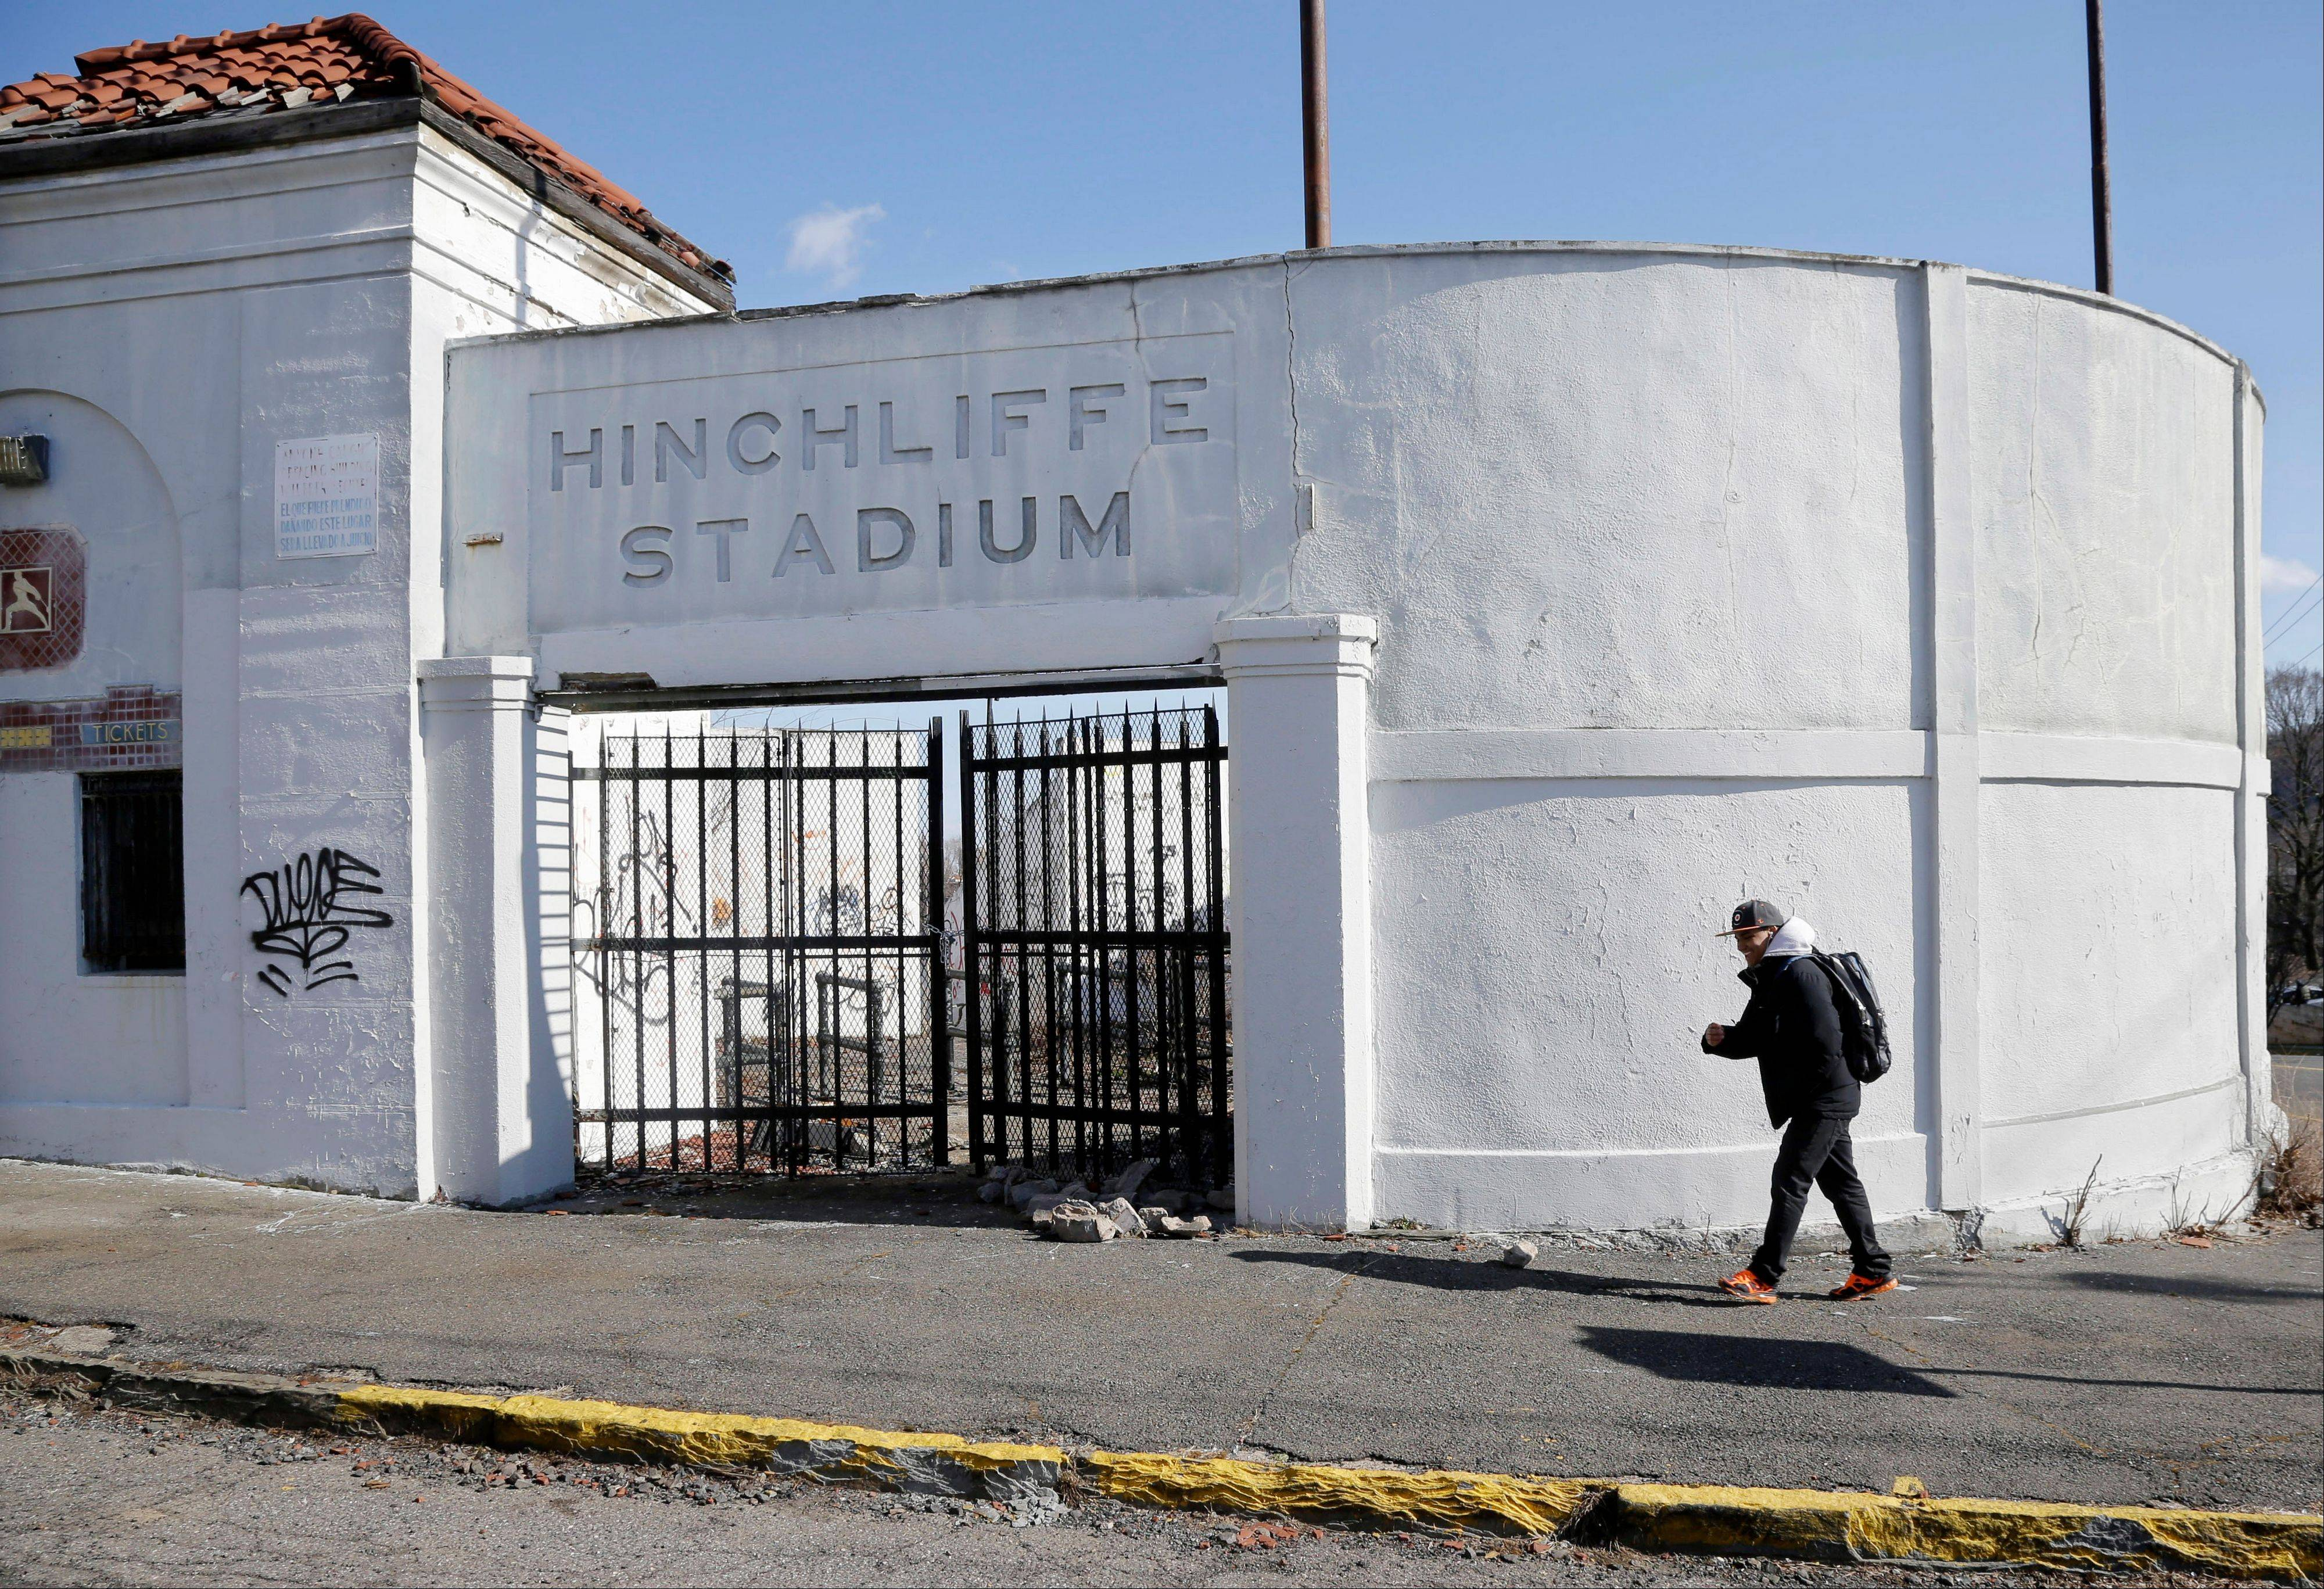 A man walks past an entrance to Hinchliffe Stadium in Paterson, N.J. Hinchliffe, built as a public works project municipal stadium in 1932, now sits in disuse, with trees growing in the graffiti-covered stands and a deteriorated artificial turf surface.